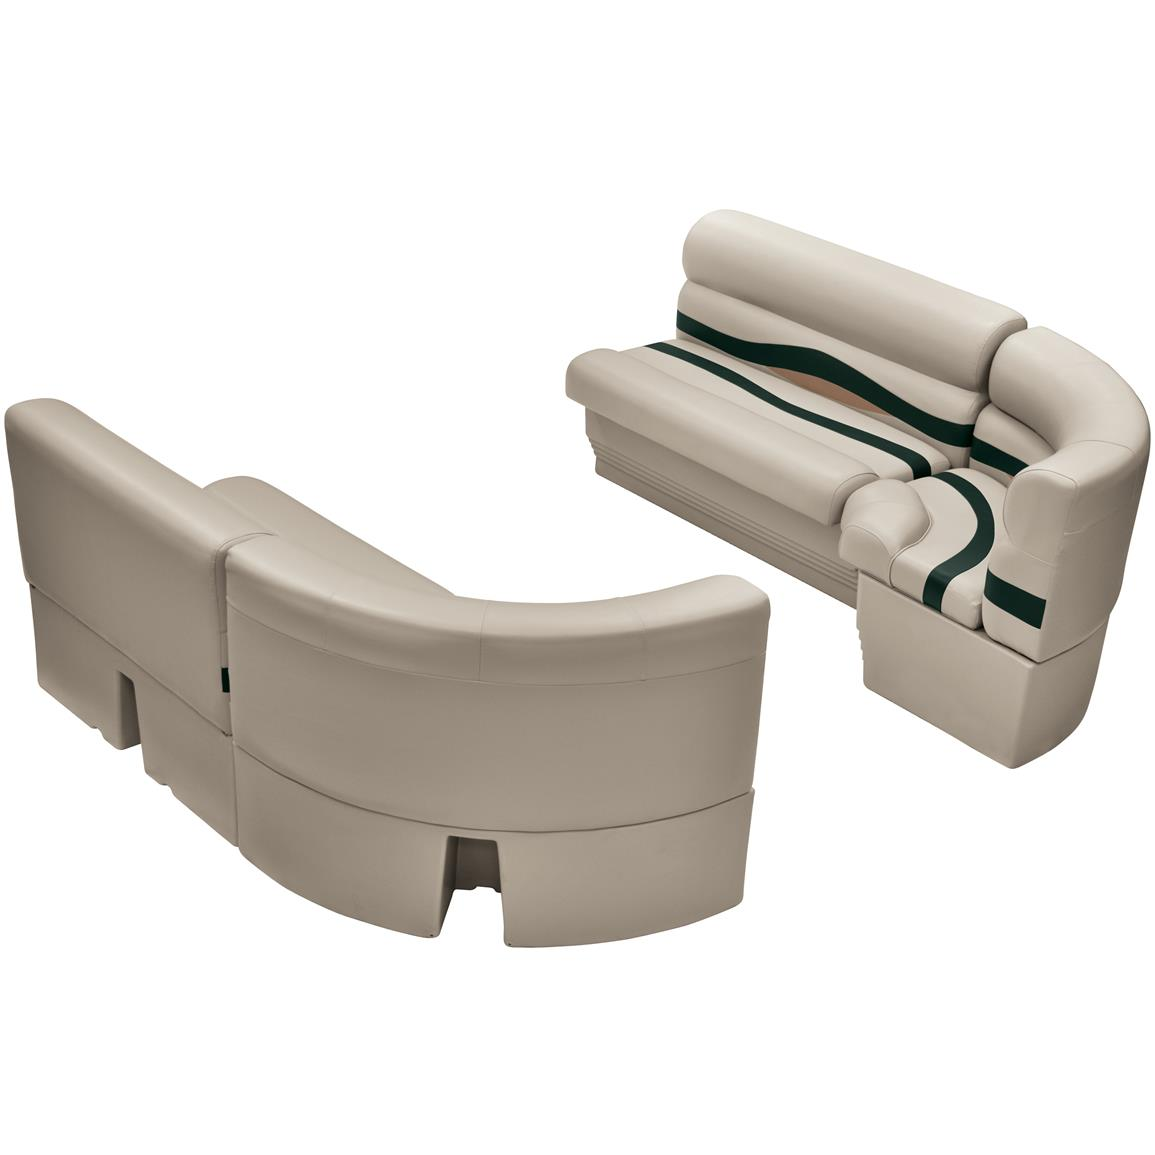 Wise® Premier Pontoon Medium Bow Radius Front Seating Group, Color E: Platinum Punch / Jade / Fawn